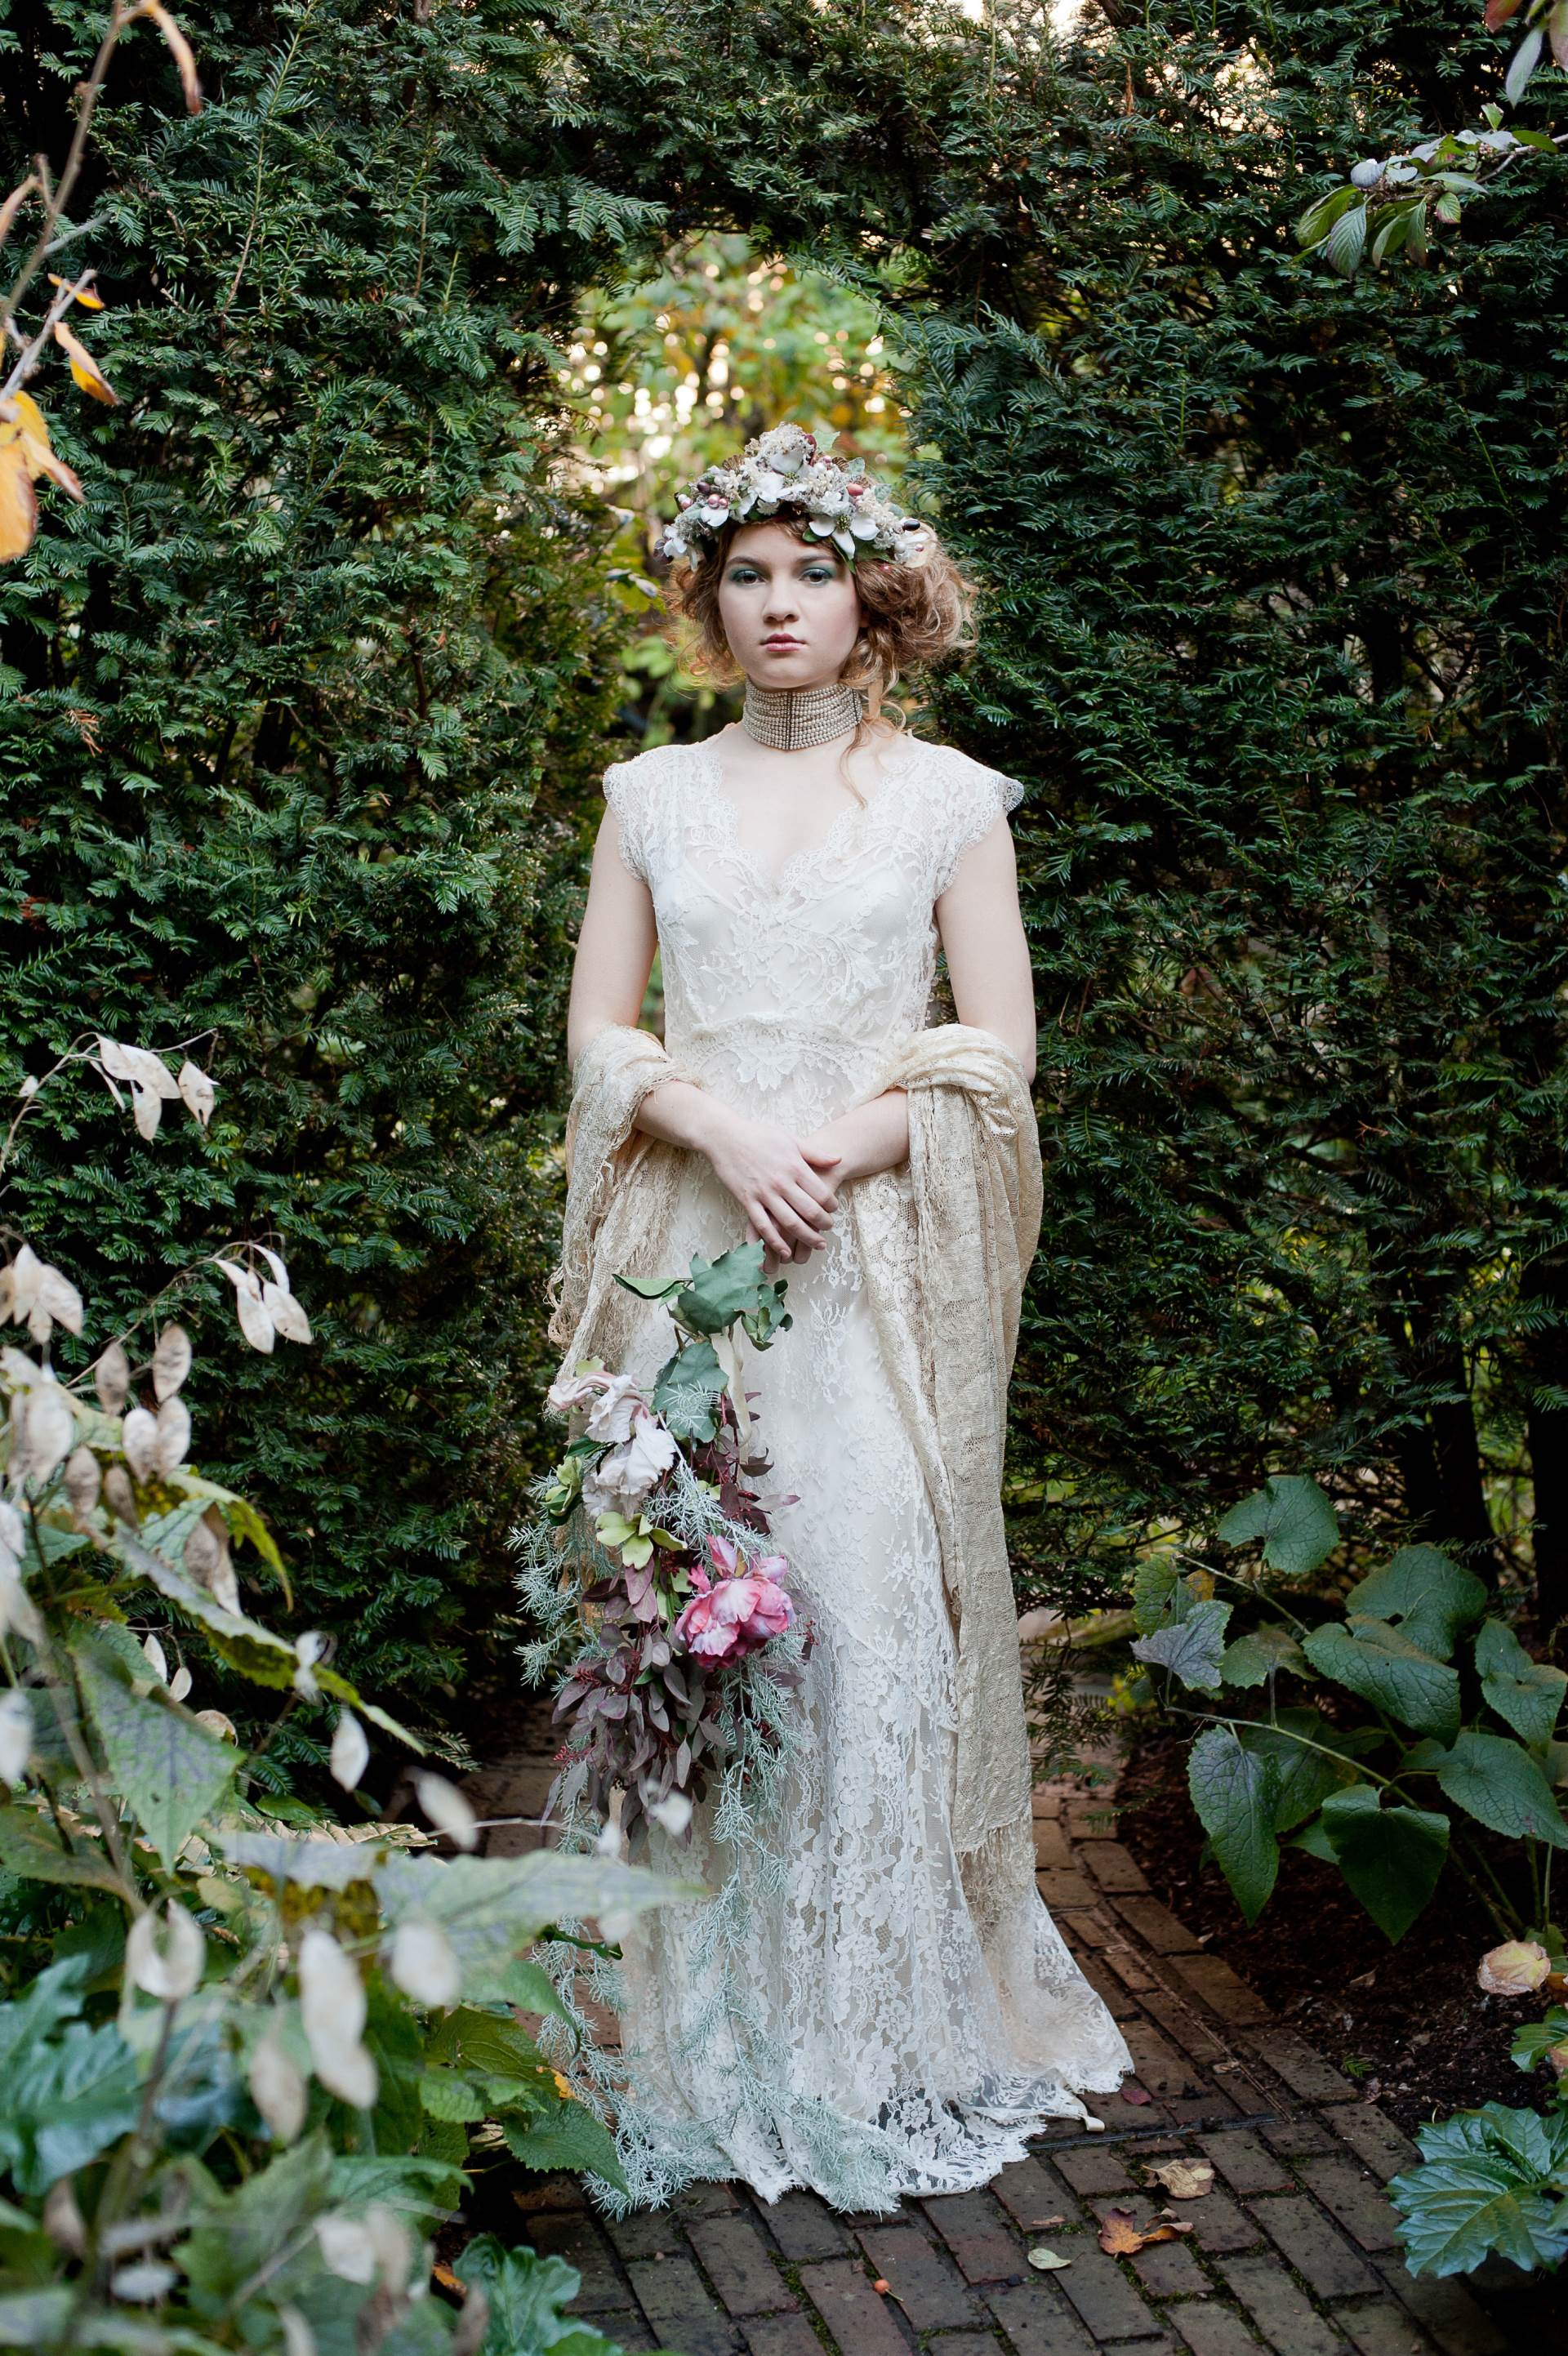 Carly by Sally Lacock as featured on The National Vintage Wedding Fair blog